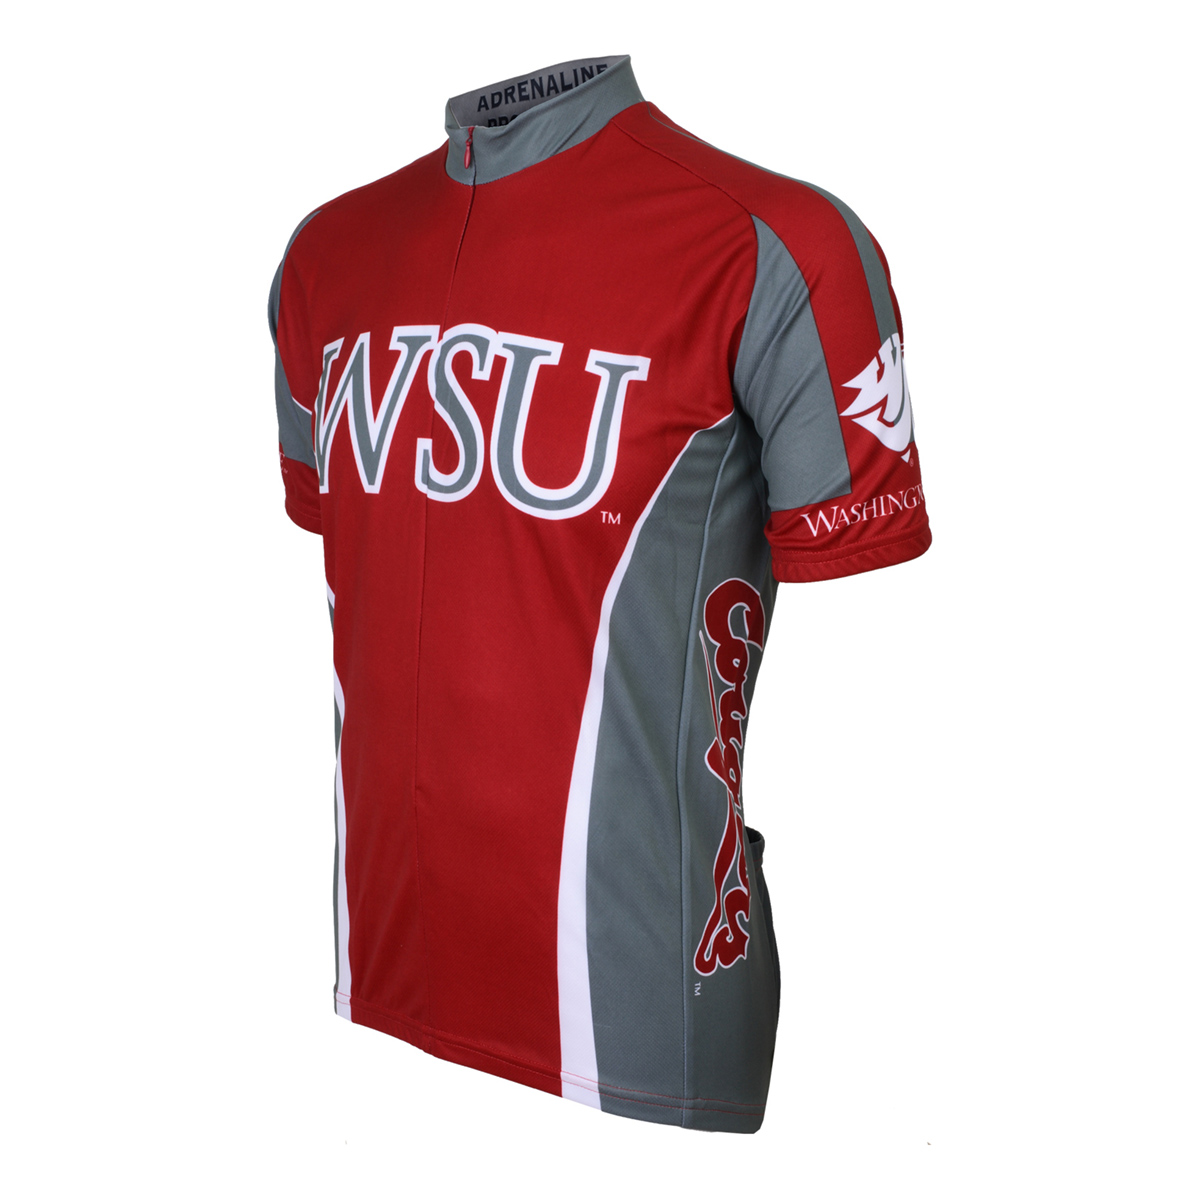 Adrenaline Promotions Washington State University Cougar Cycling Jersey